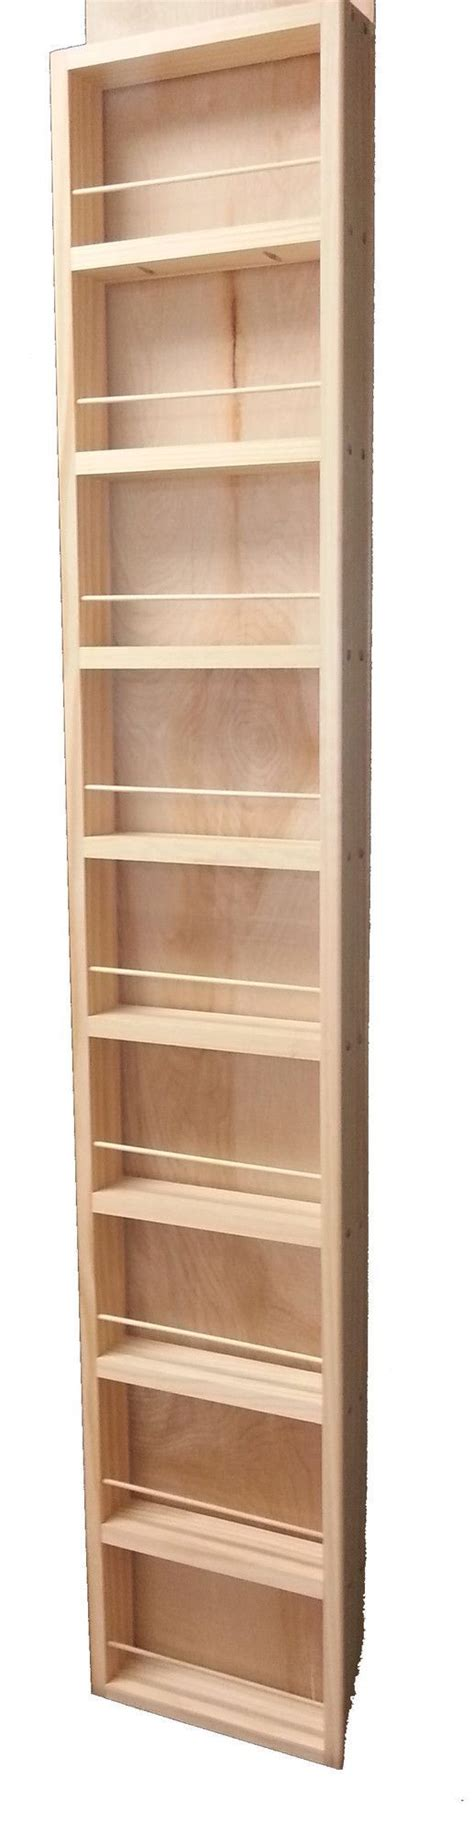 spice cabinet wall mount wall mounted spice rack spice racks and solid pine on